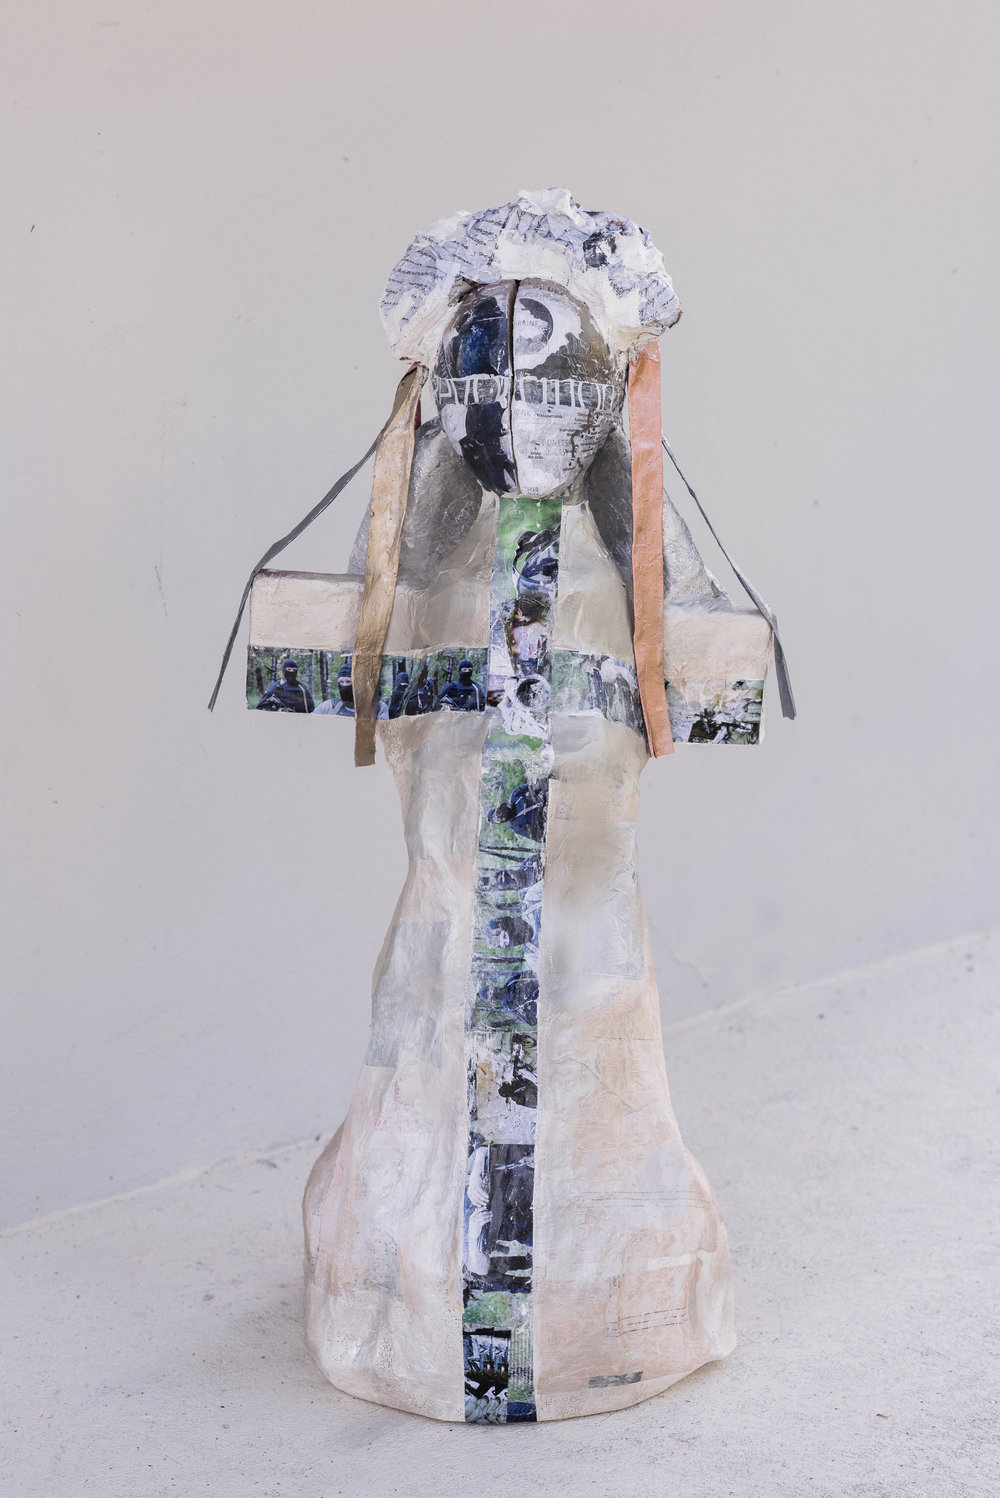 Sacrifice  1.0 x 0.5 meters, 2018 Paper mache, plaster of paris, styrofoam, cardboard, acrylic paint, paper, duct tape, wires, fabric, spray paint